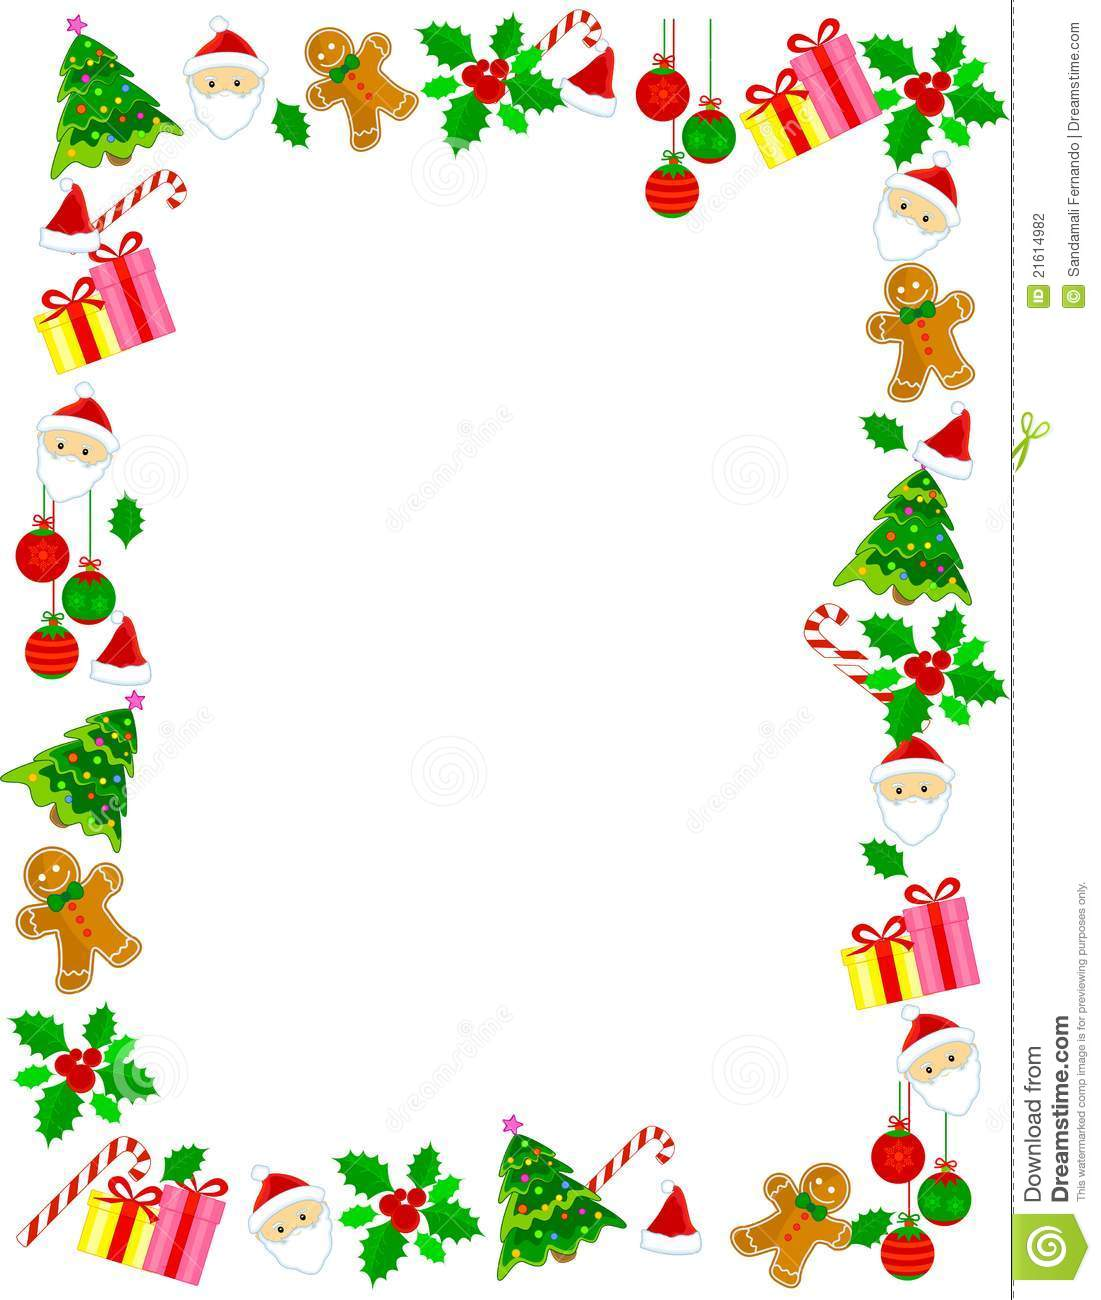 download christmas border frame stock vector illustration of berry 21614982